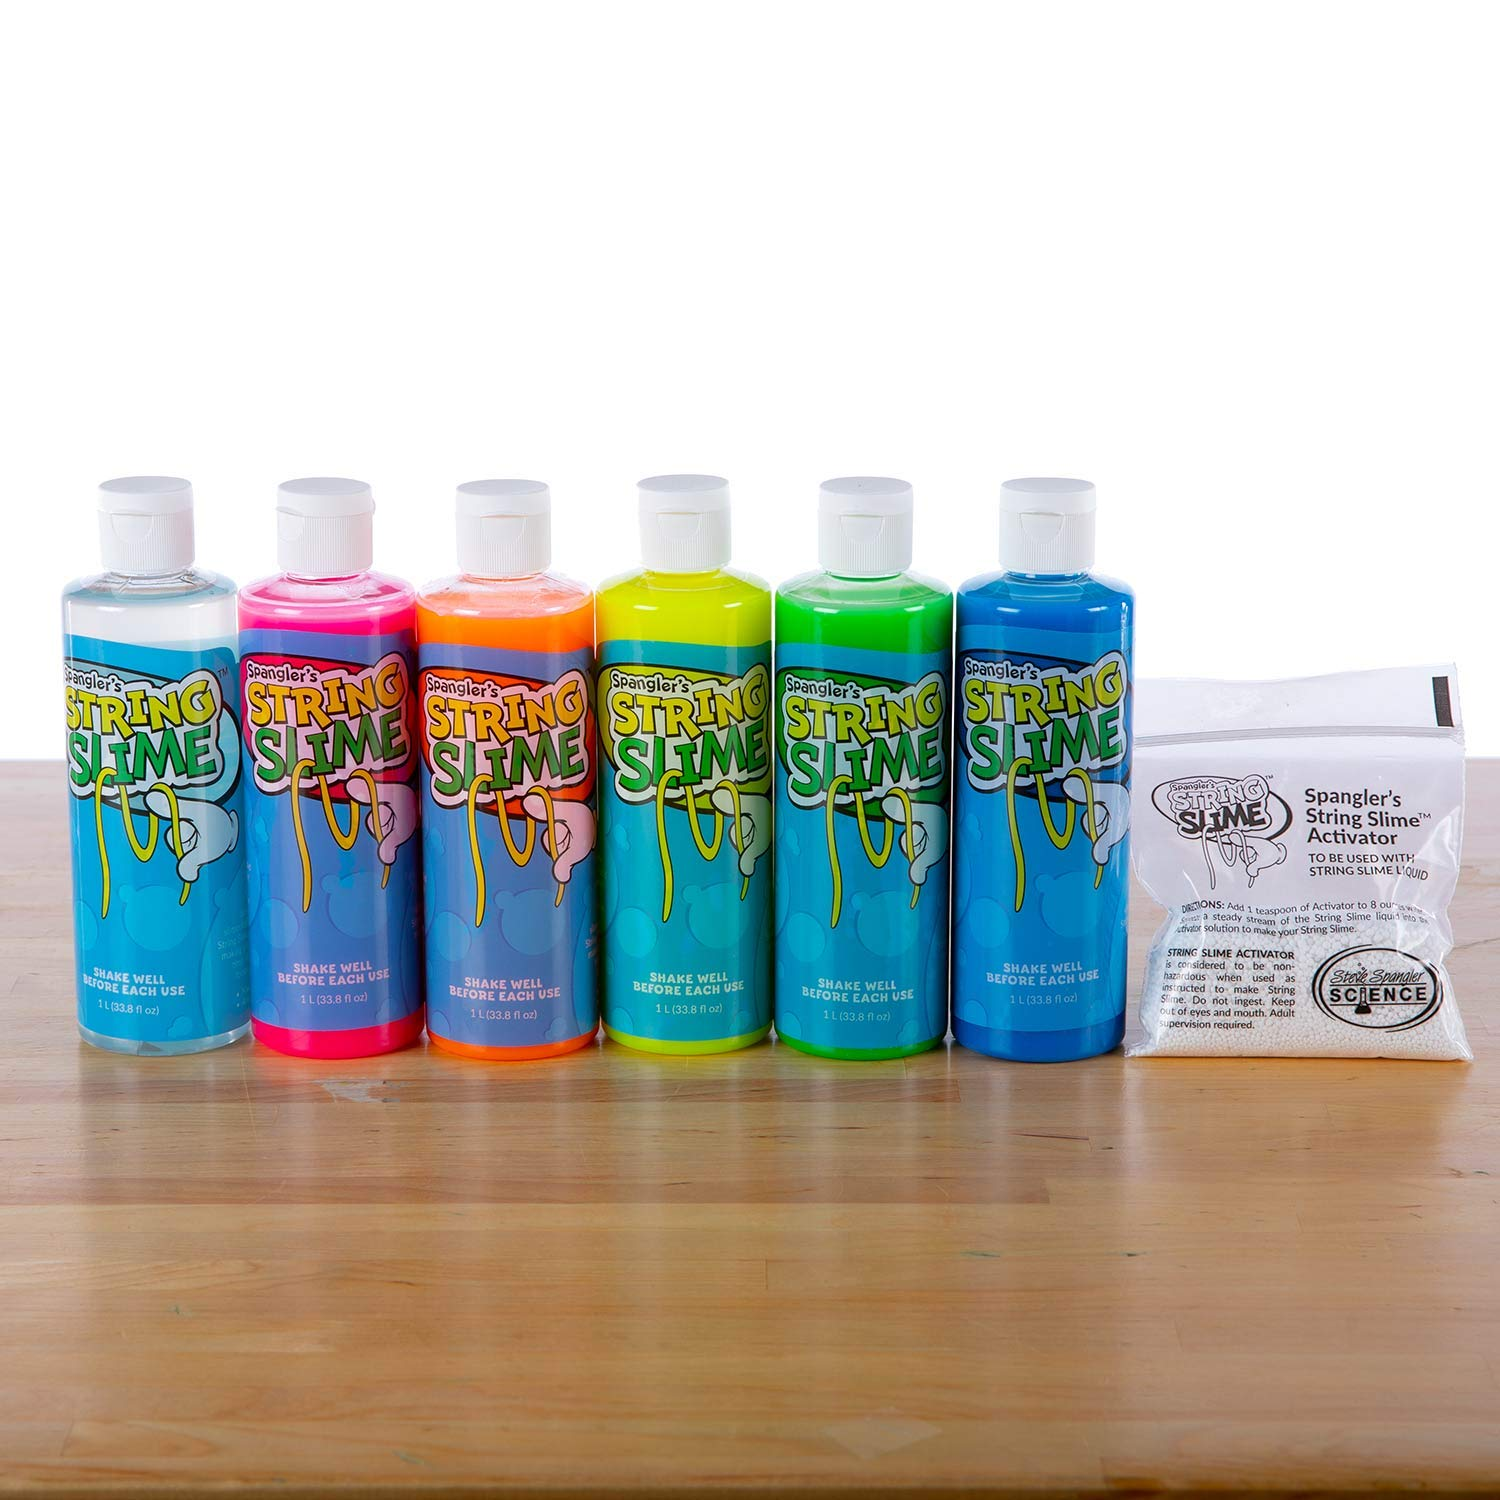 Steve Spangler's Rainbow String Slime, 6 8oz bottles of Slime, DIY Slime Kit by Steve Spangler Science